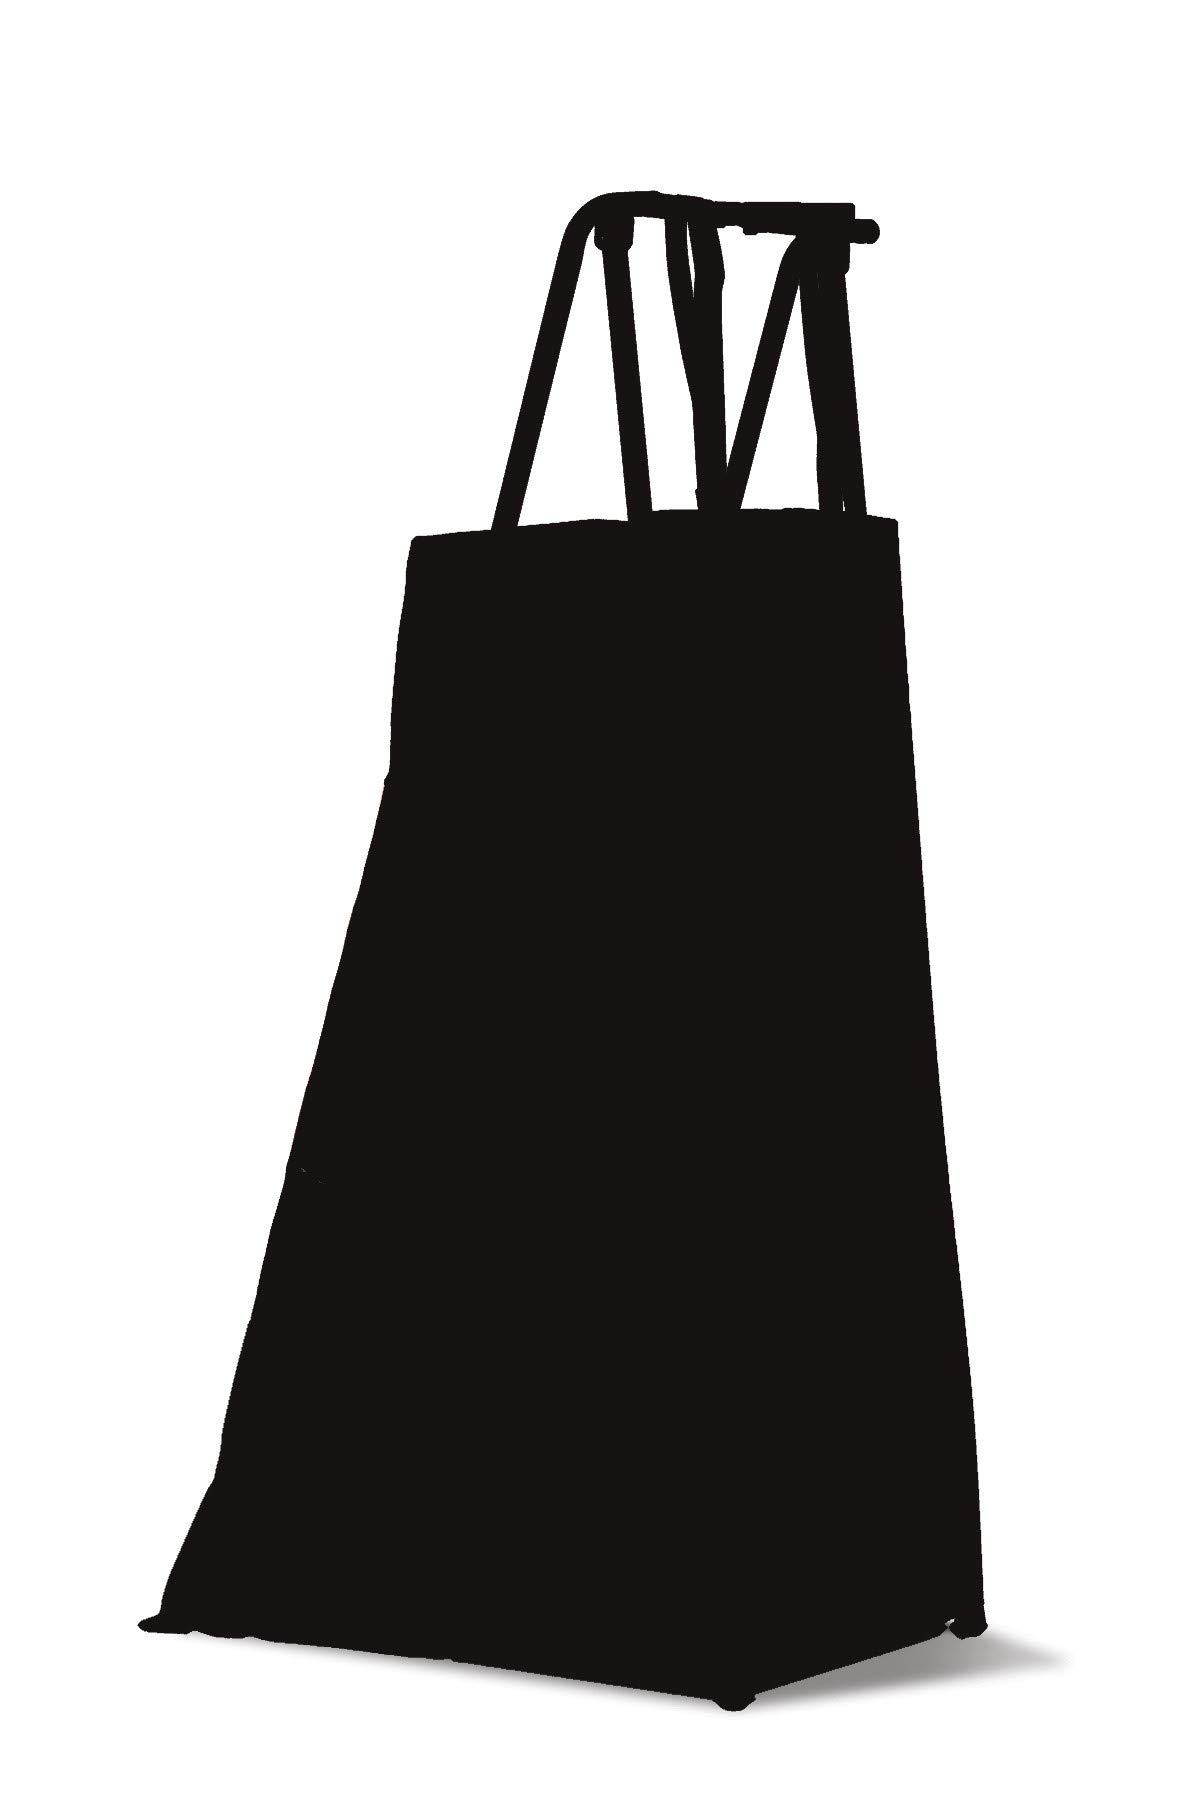 Eastern Atlantic New - Volleyball Referee Stand Protective Padding (Black)